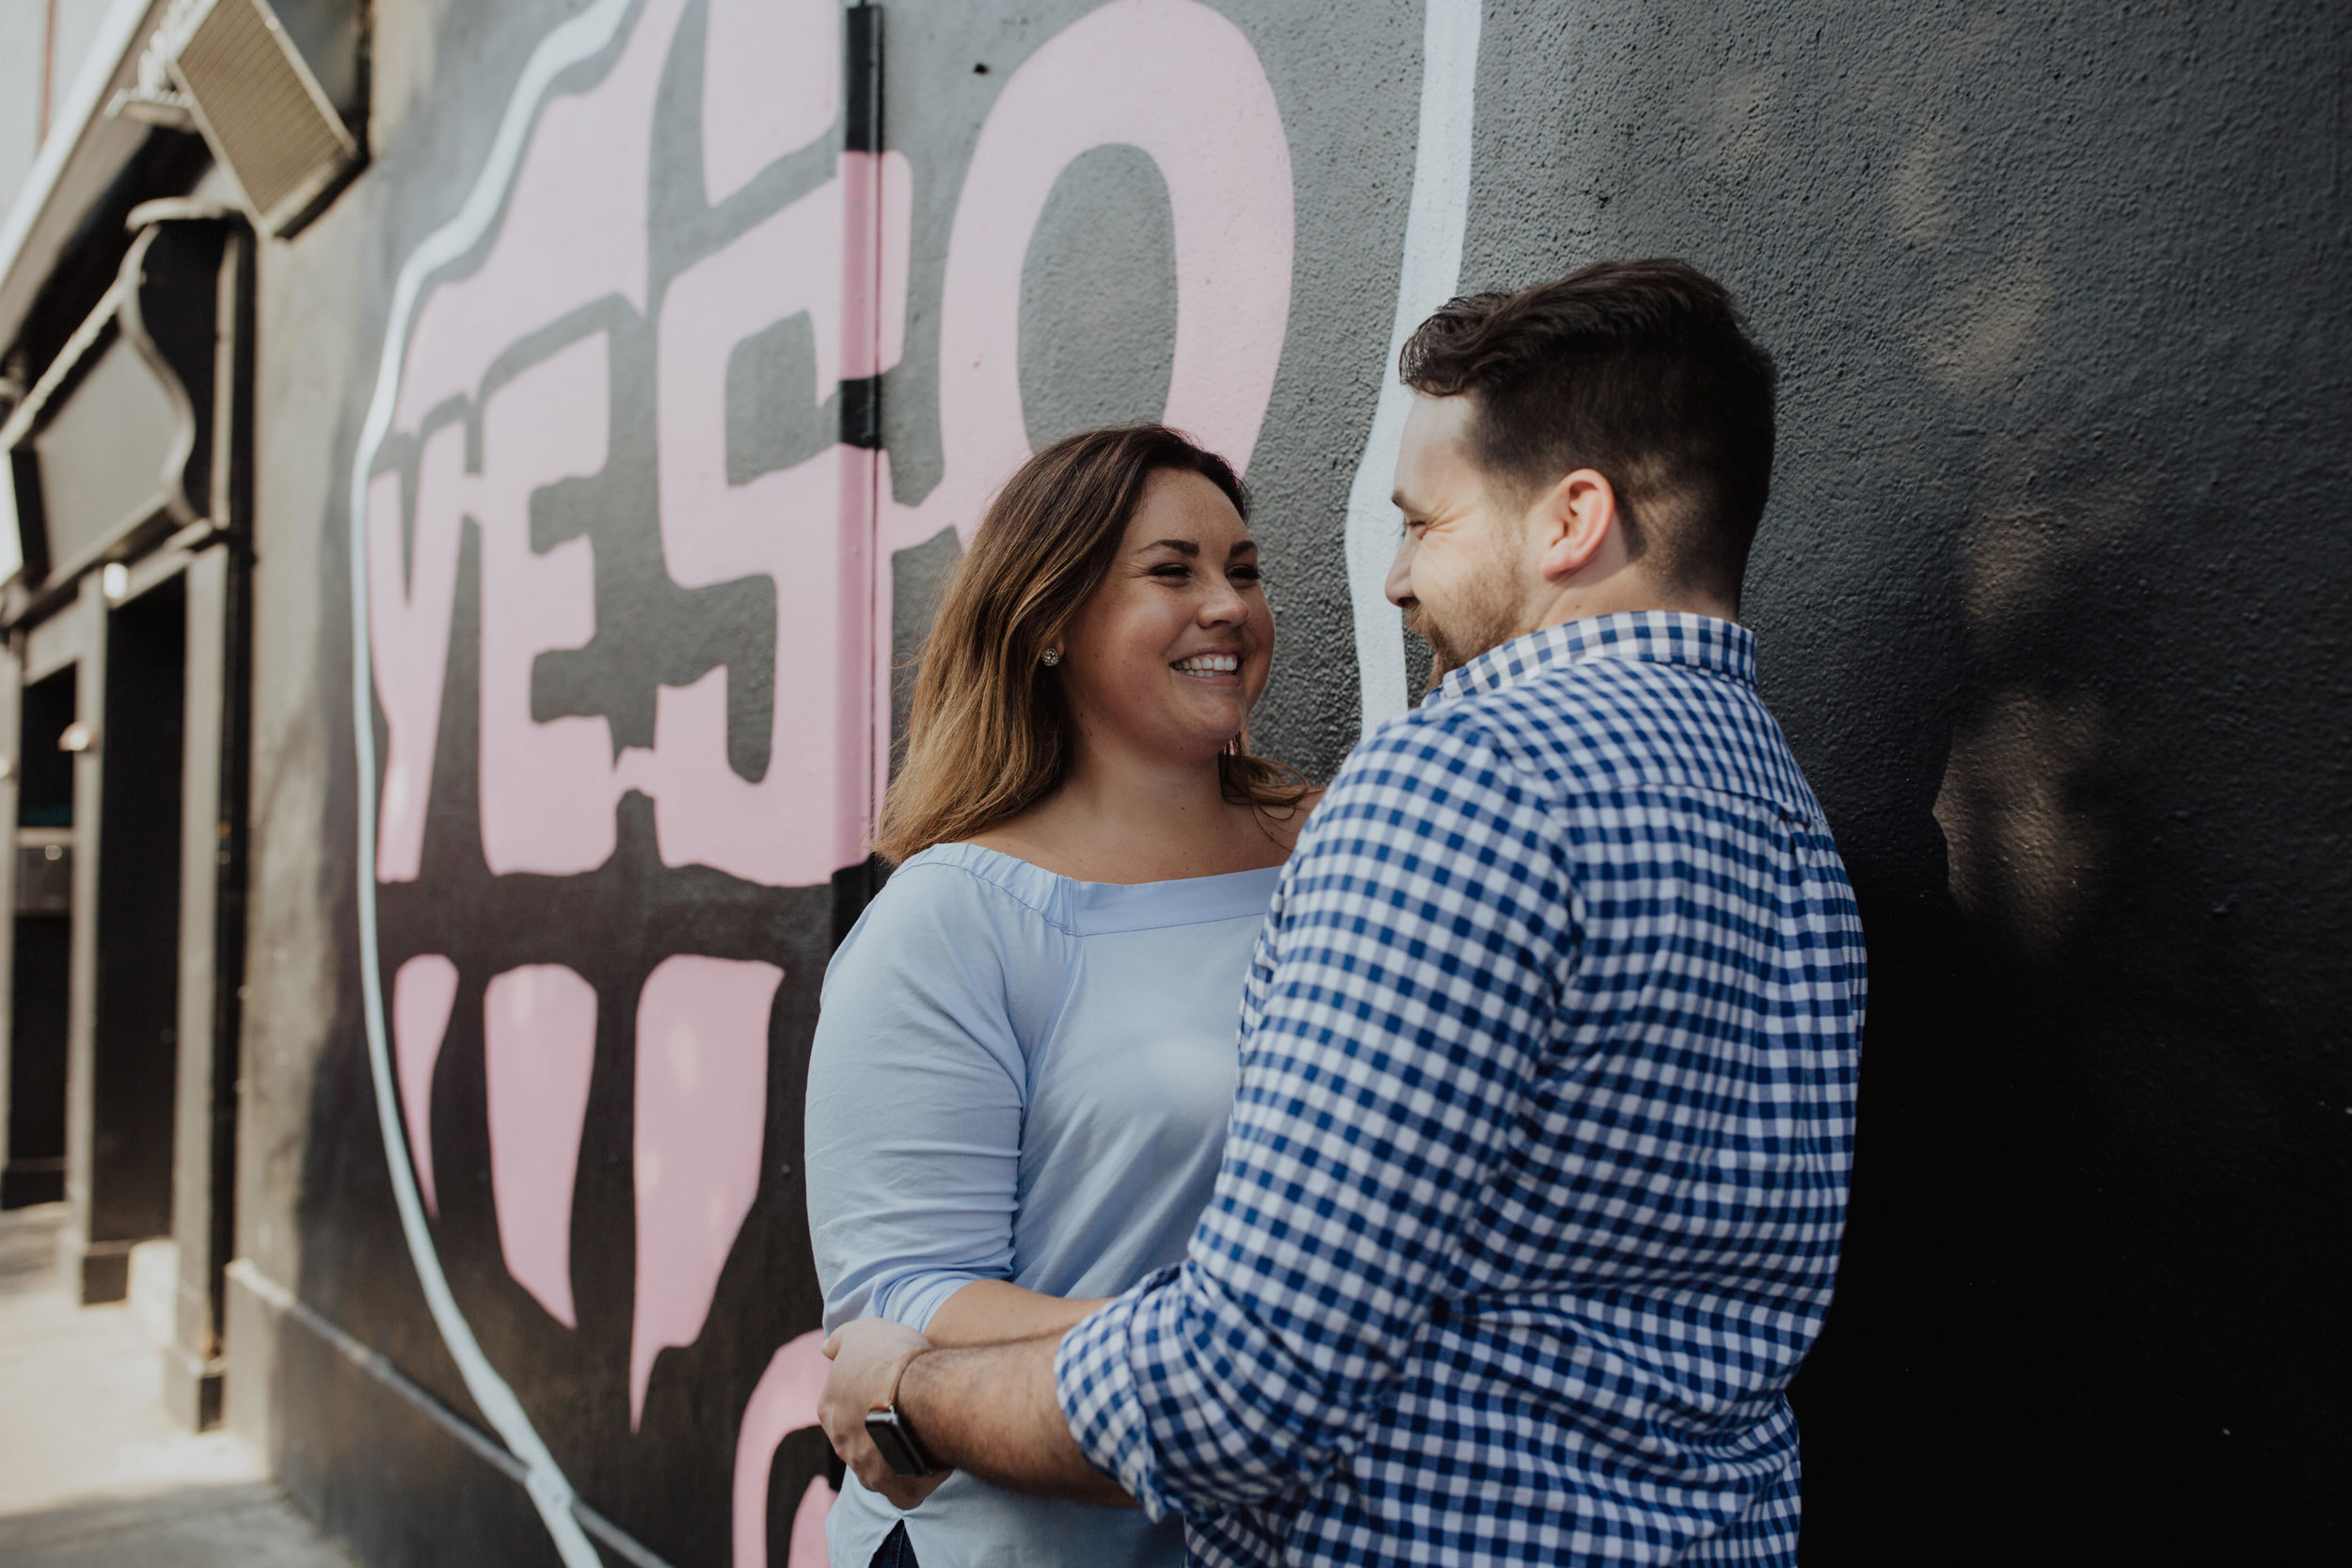 c&c_dublin_city_engagement_photos_livia_figueiredo_ireland_wedding_photographer_71.jpg